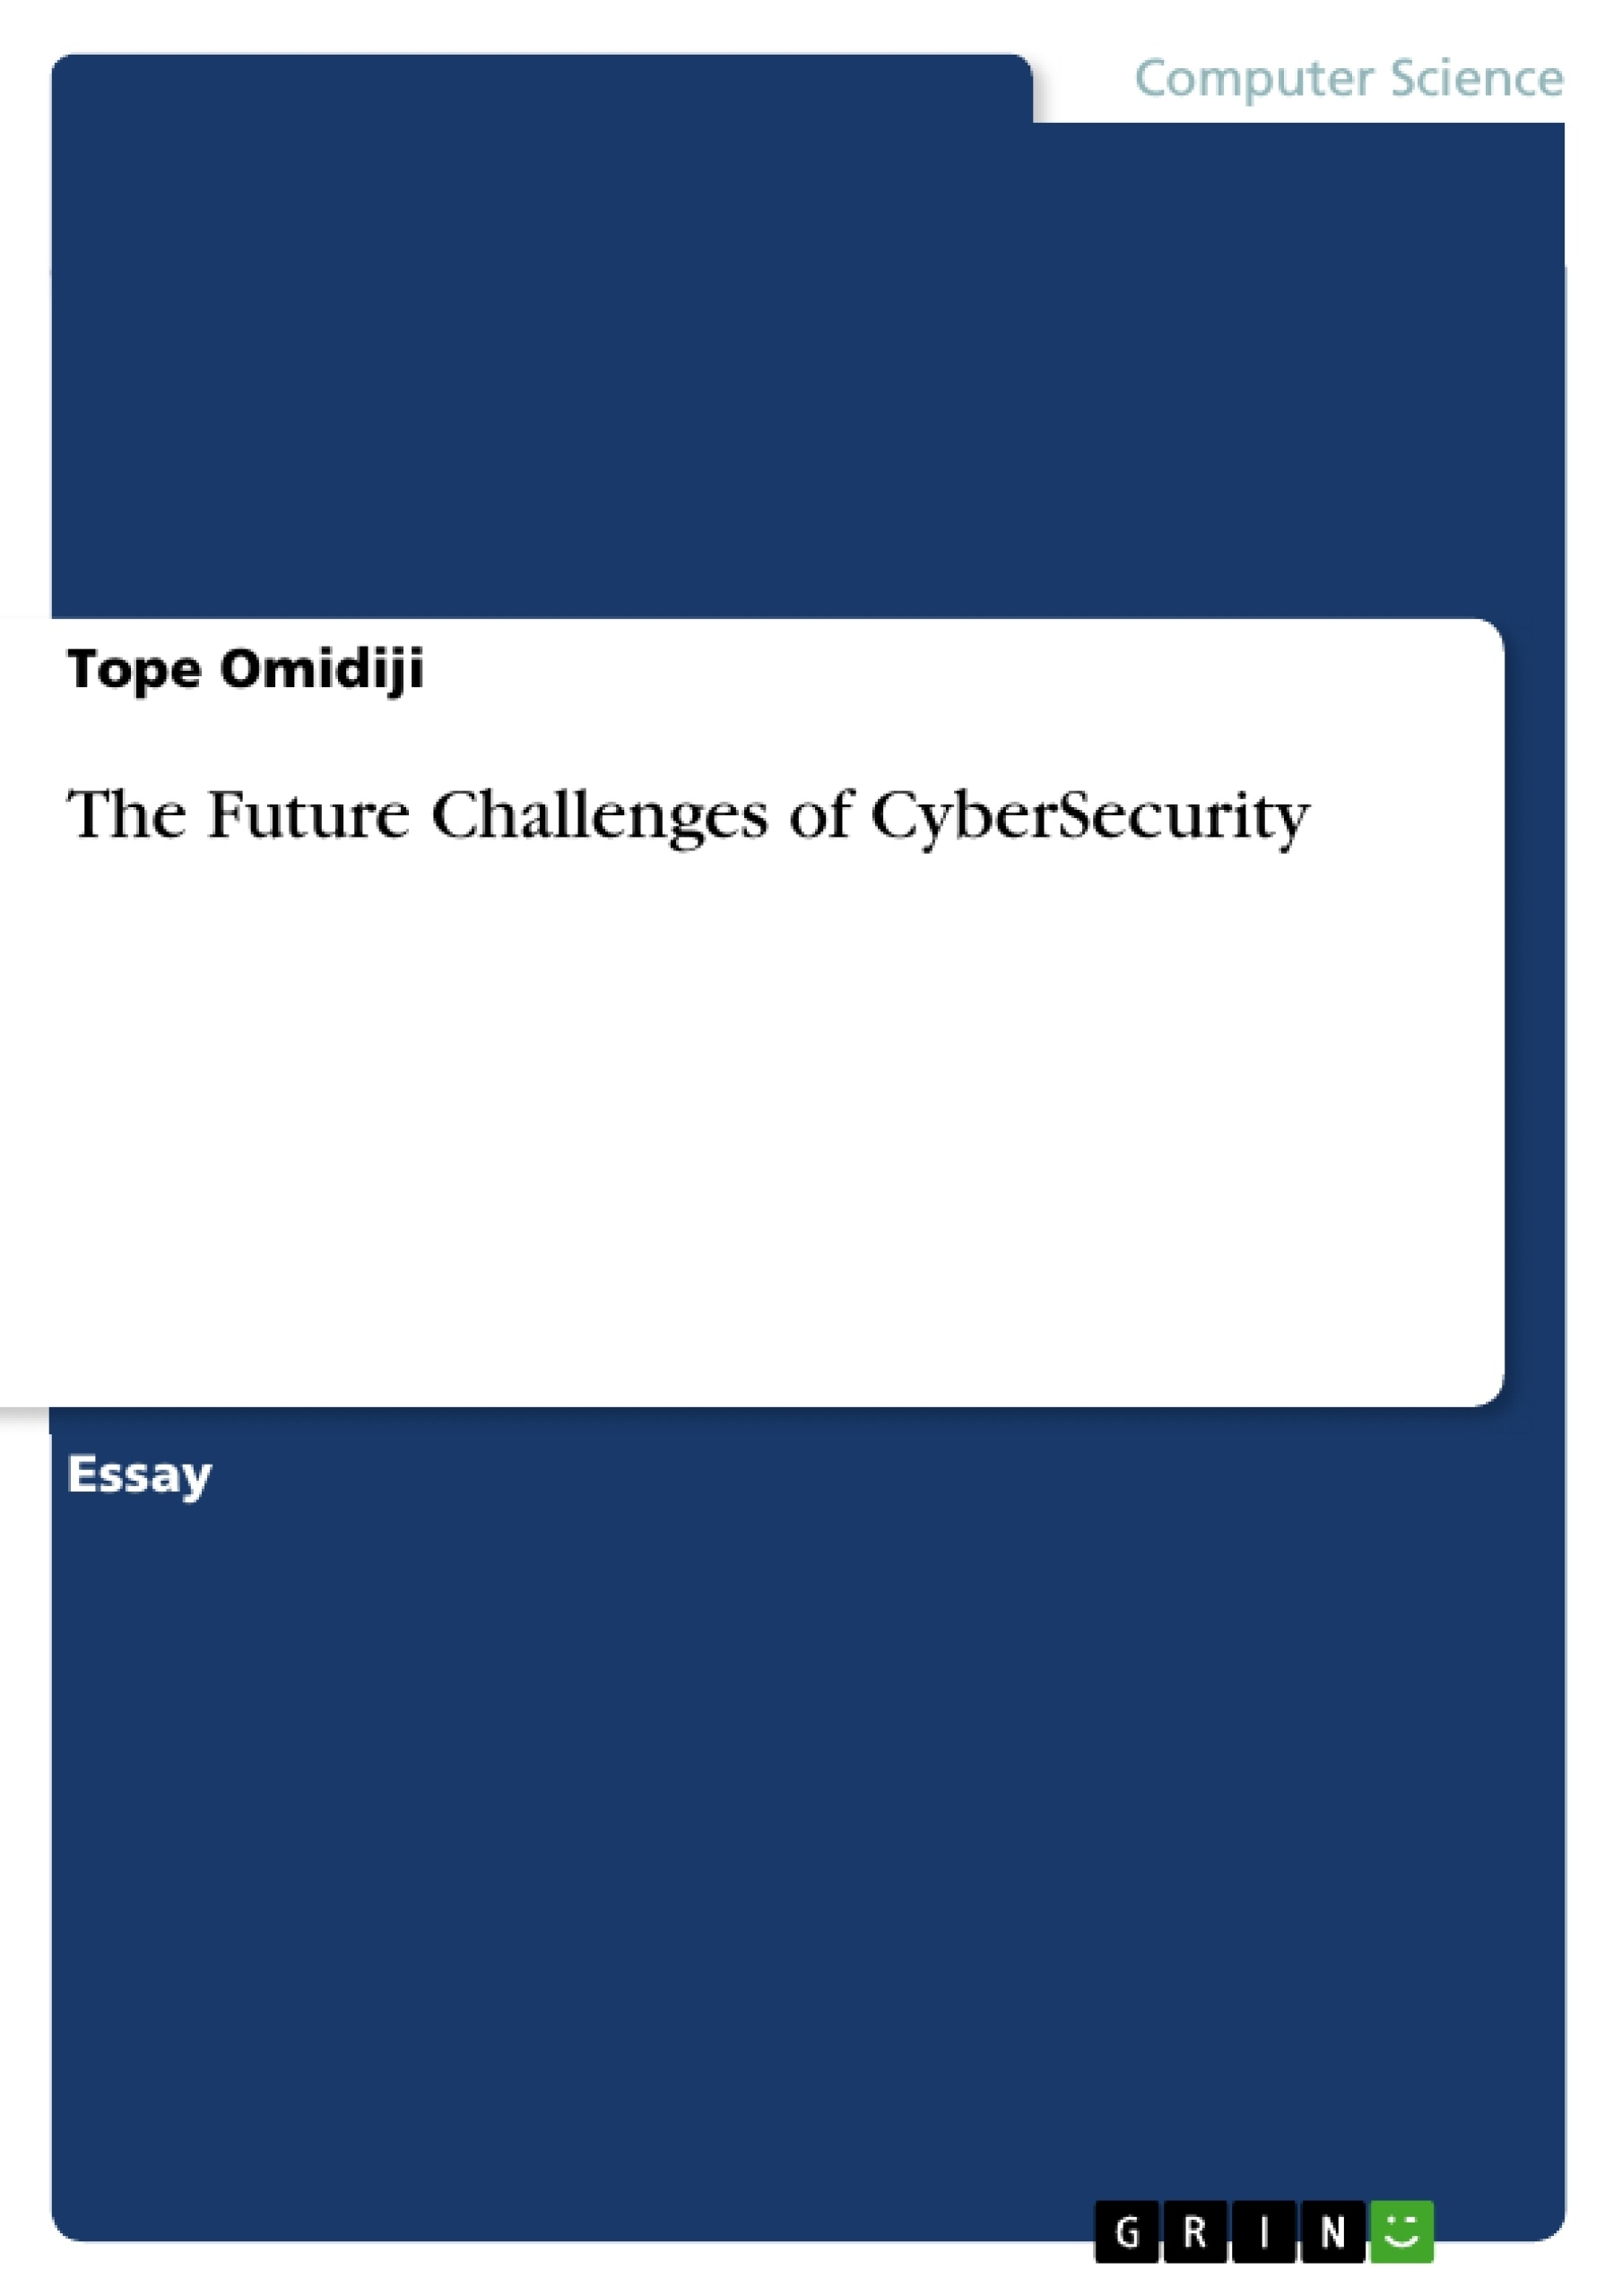 Title: The Future Challenges of CyberSecurity